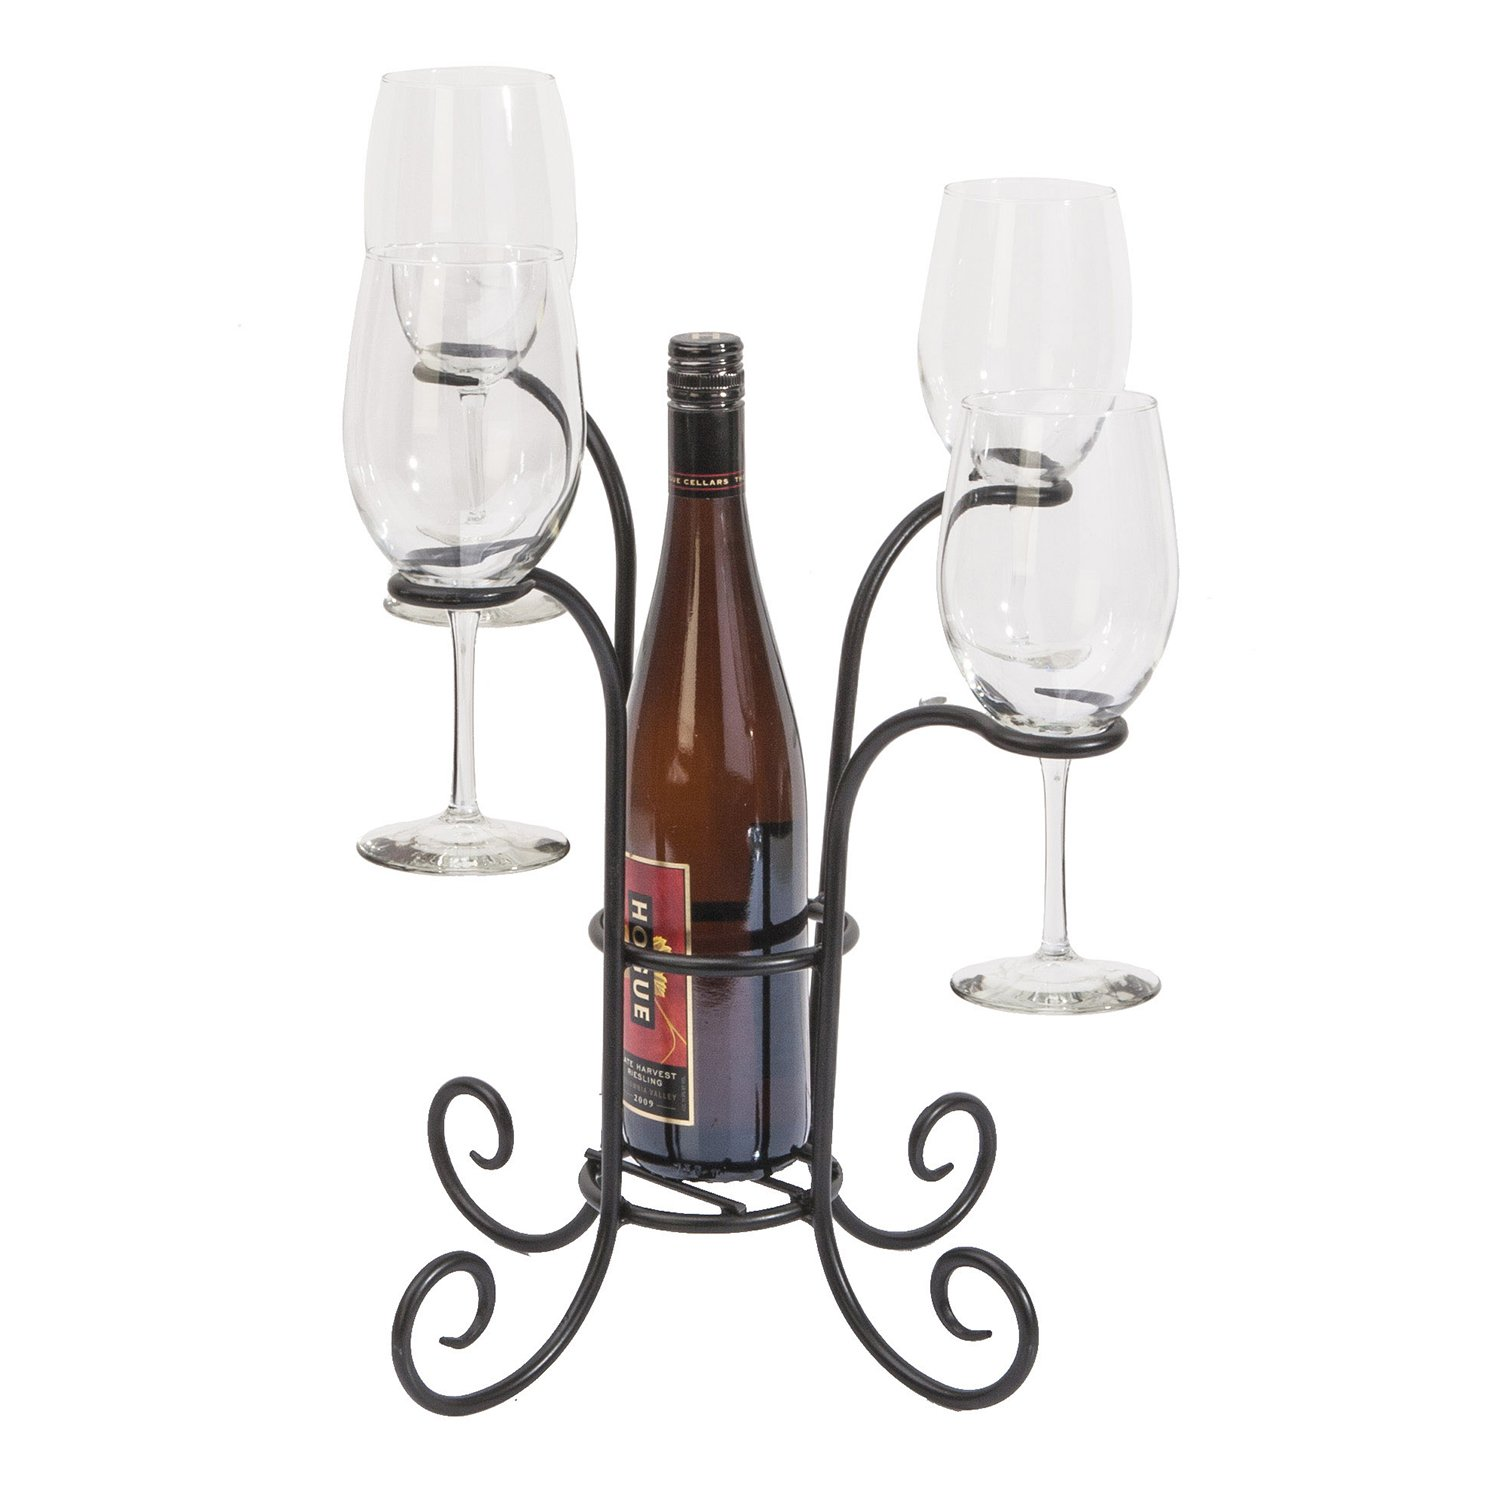 Panacea 87939 Wine Bottle and Glasses Caddy, 15-Inch Height by 14.3-Inch Width, Black